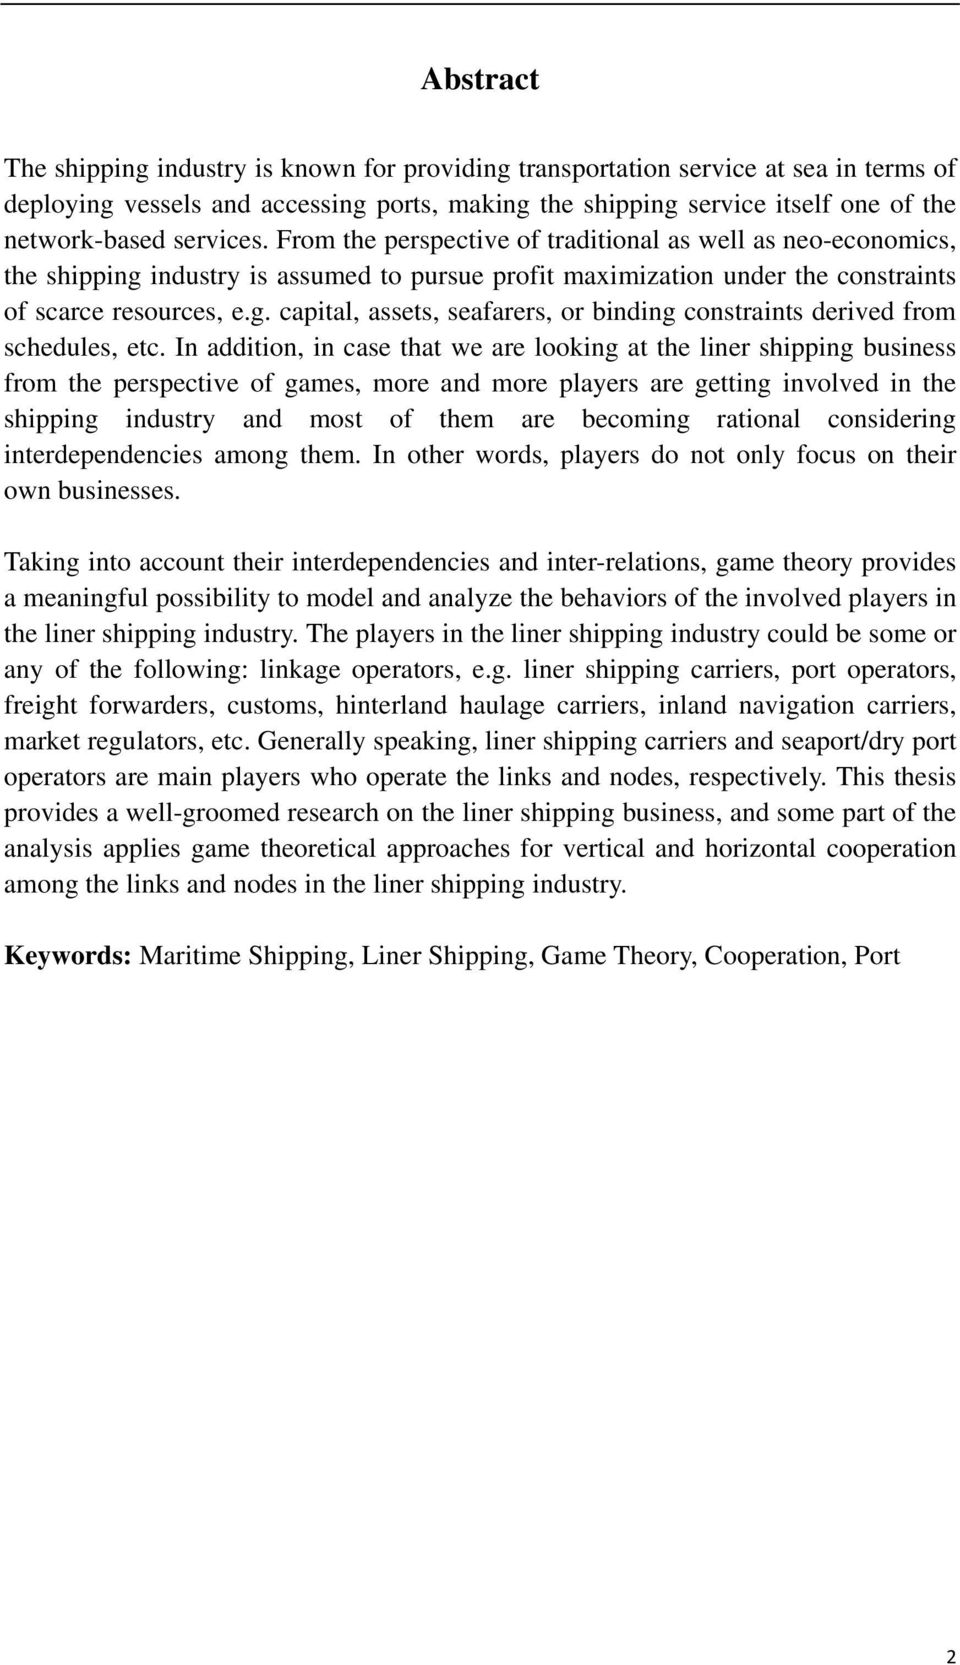 In addition, in case that we are looking at the liner shipping business from the perspective of games, more and more players are getting involved in the shipping industry and most of them are